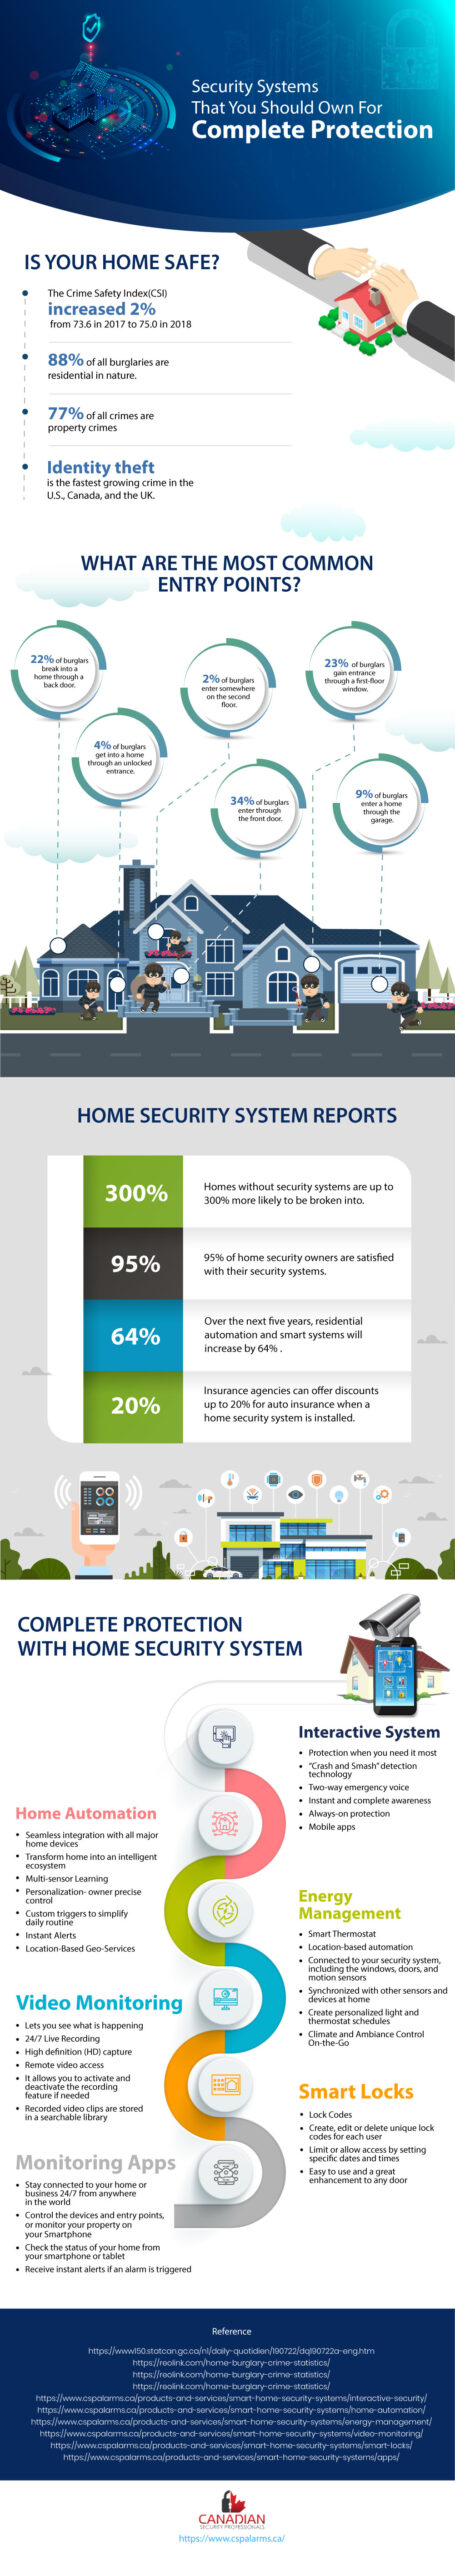 How (and Why) Security Systems Provide Complete Protection for Your Home